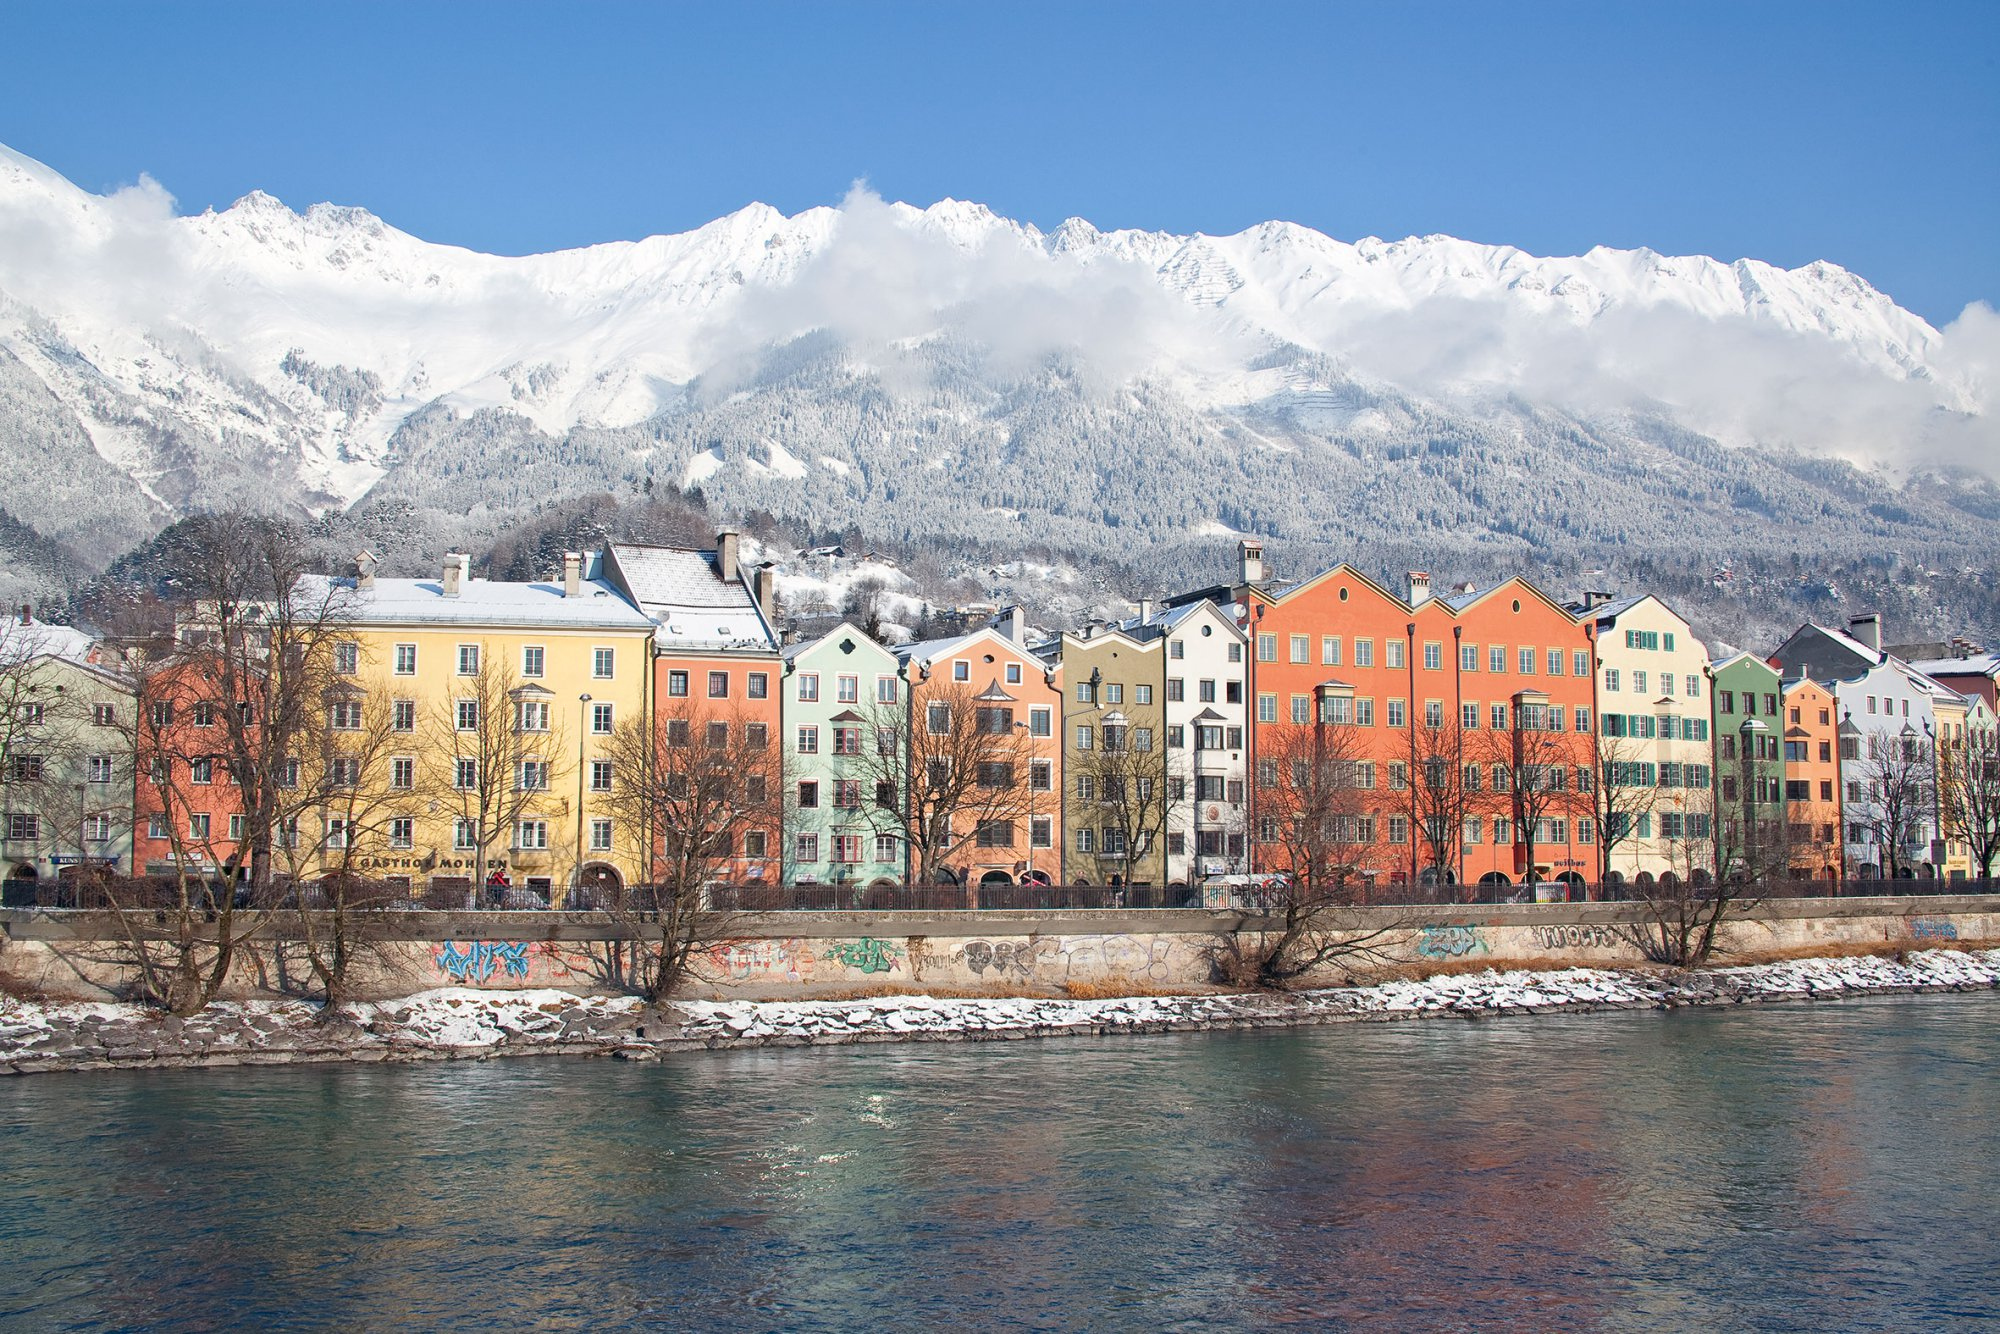 Innsbruc, the capital of the alps, 30 minutes away from Kühtai. Culture, shopping and christmas markets are waiting for you.